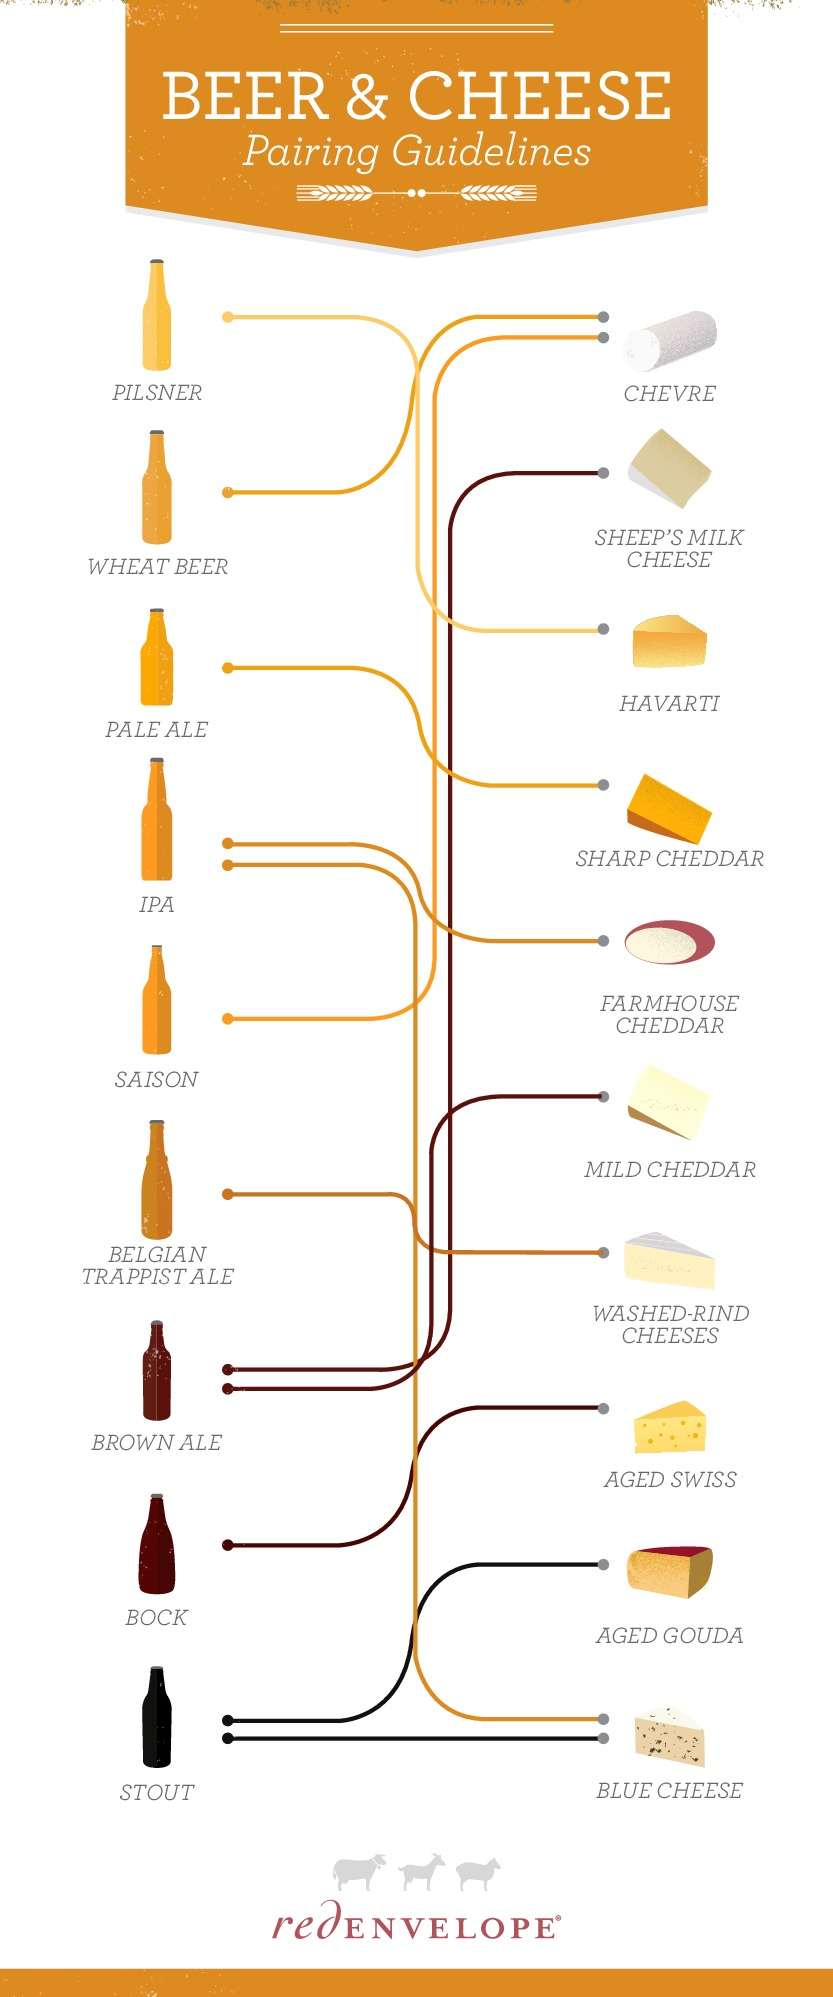 beer-and-cheese-pairing-guide_52e921e29818b